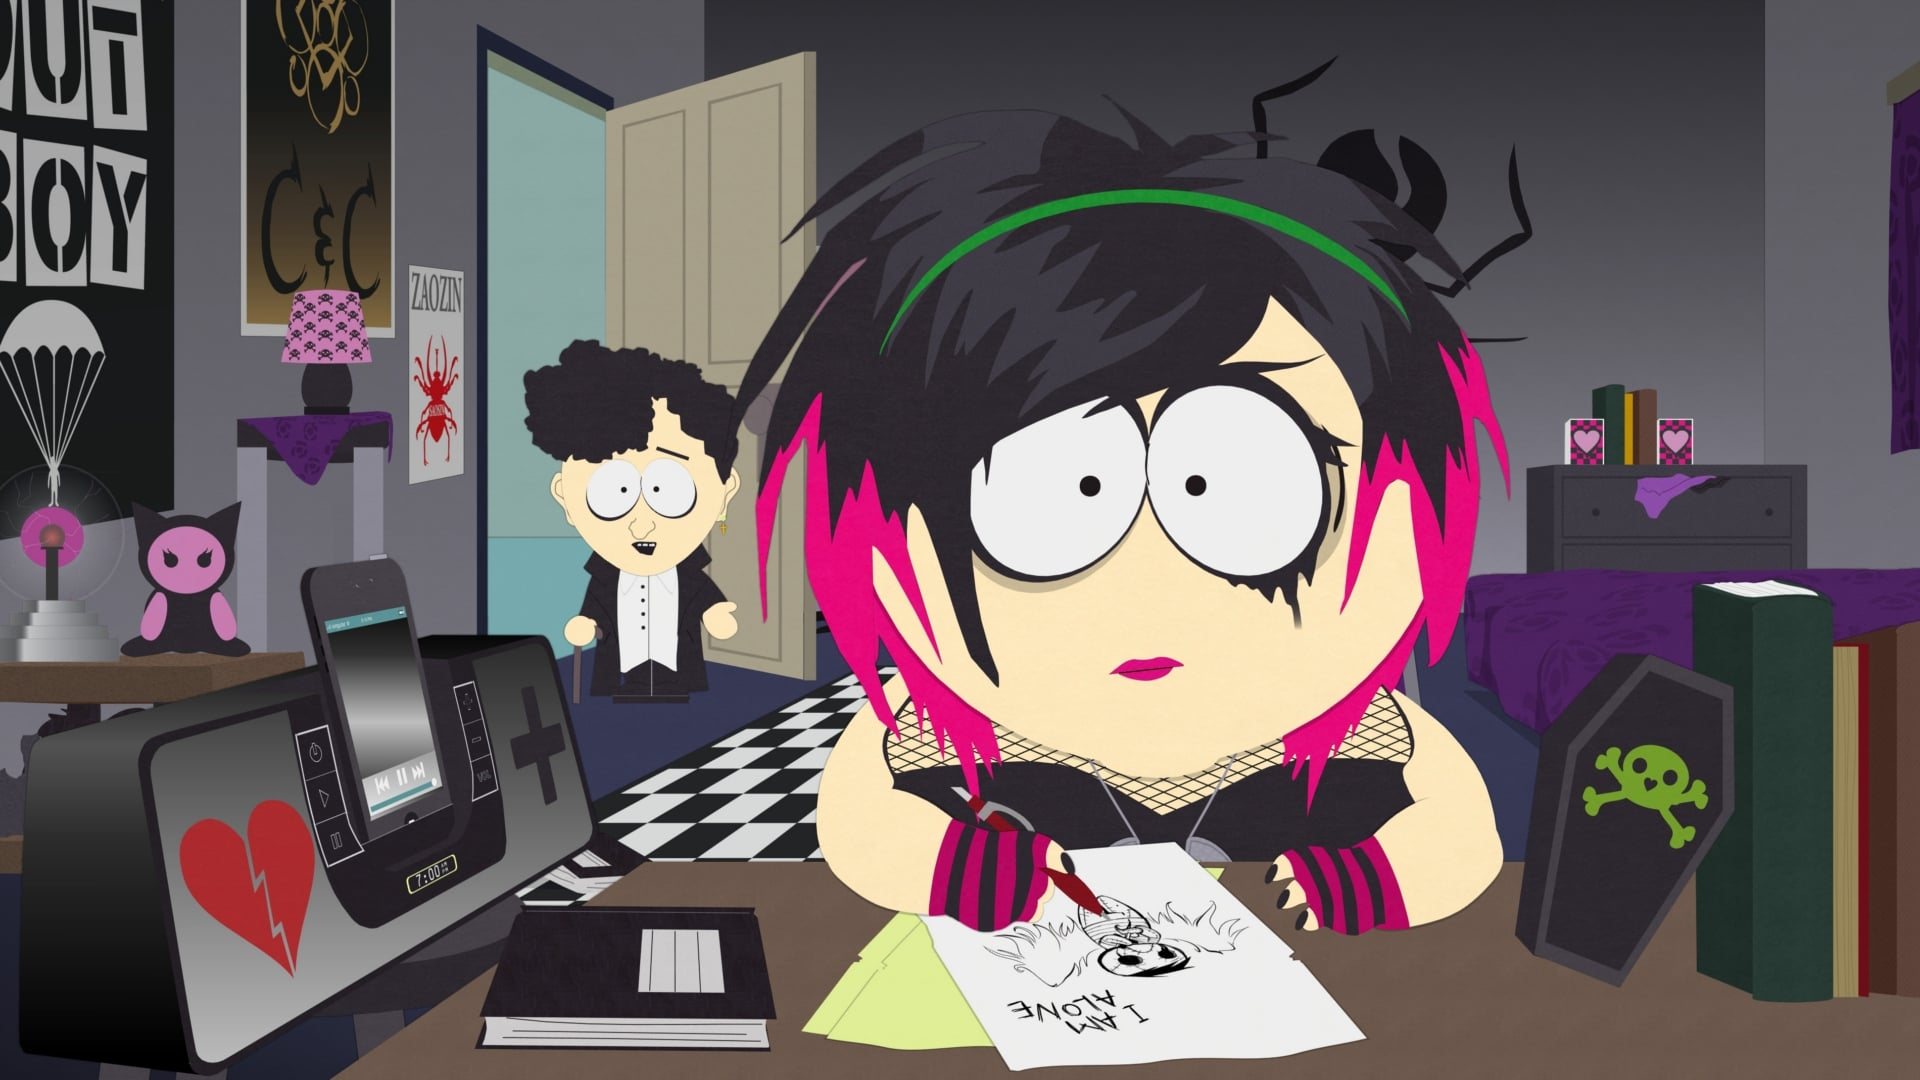 South Park - Season 17 Episode 4 : Goth Kids 3: Dawn of the Posers